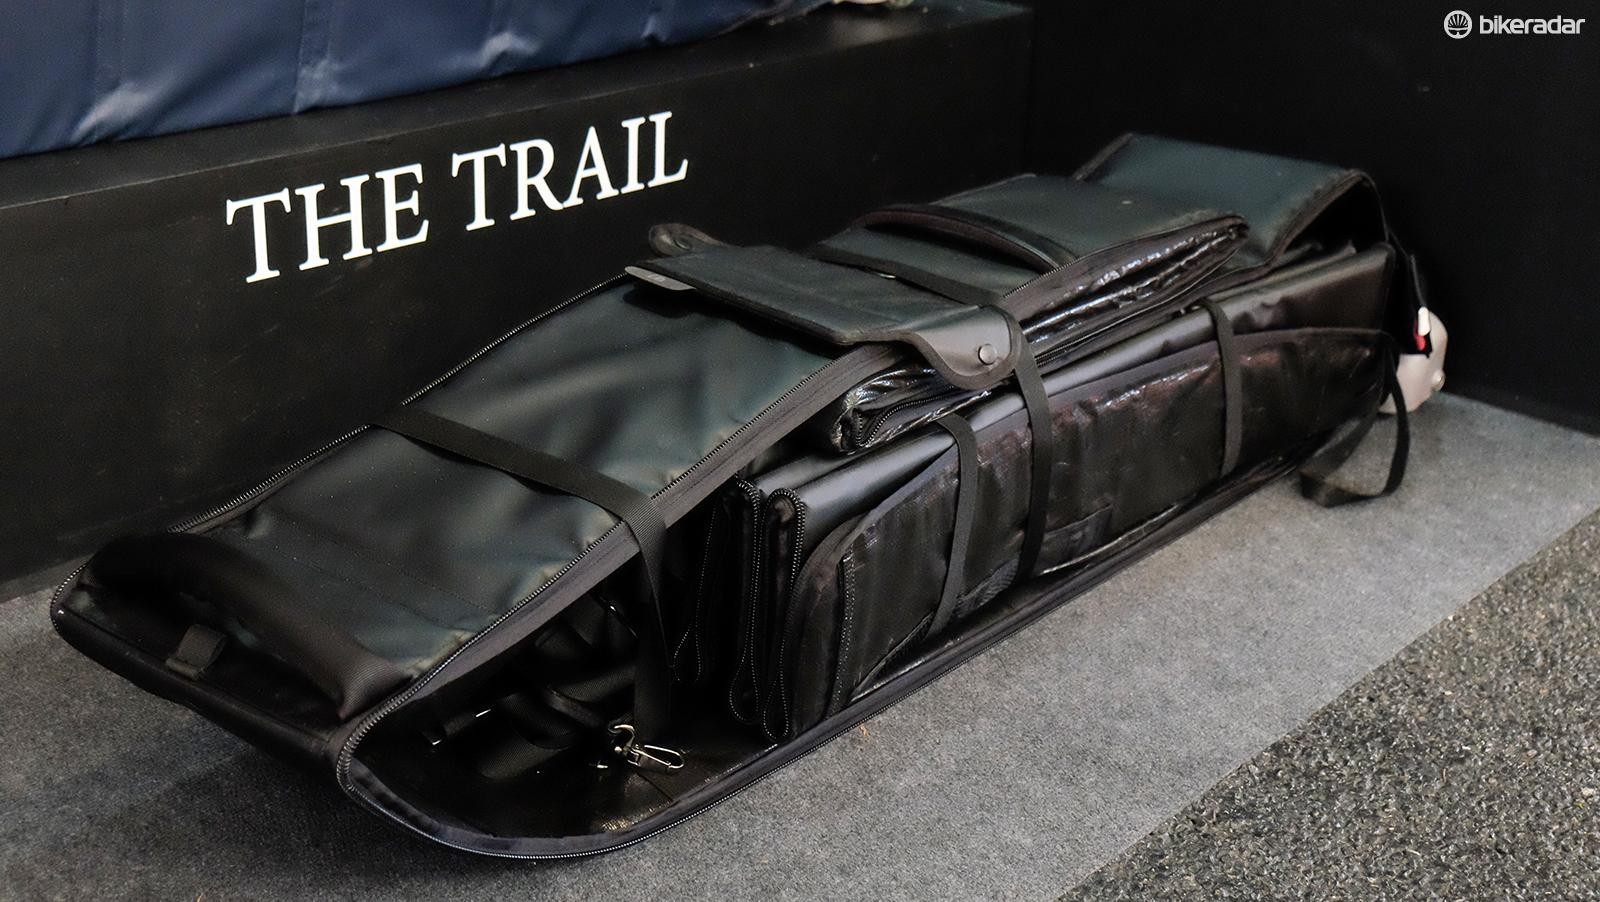 Both the Tour and Trail pack down when not in use